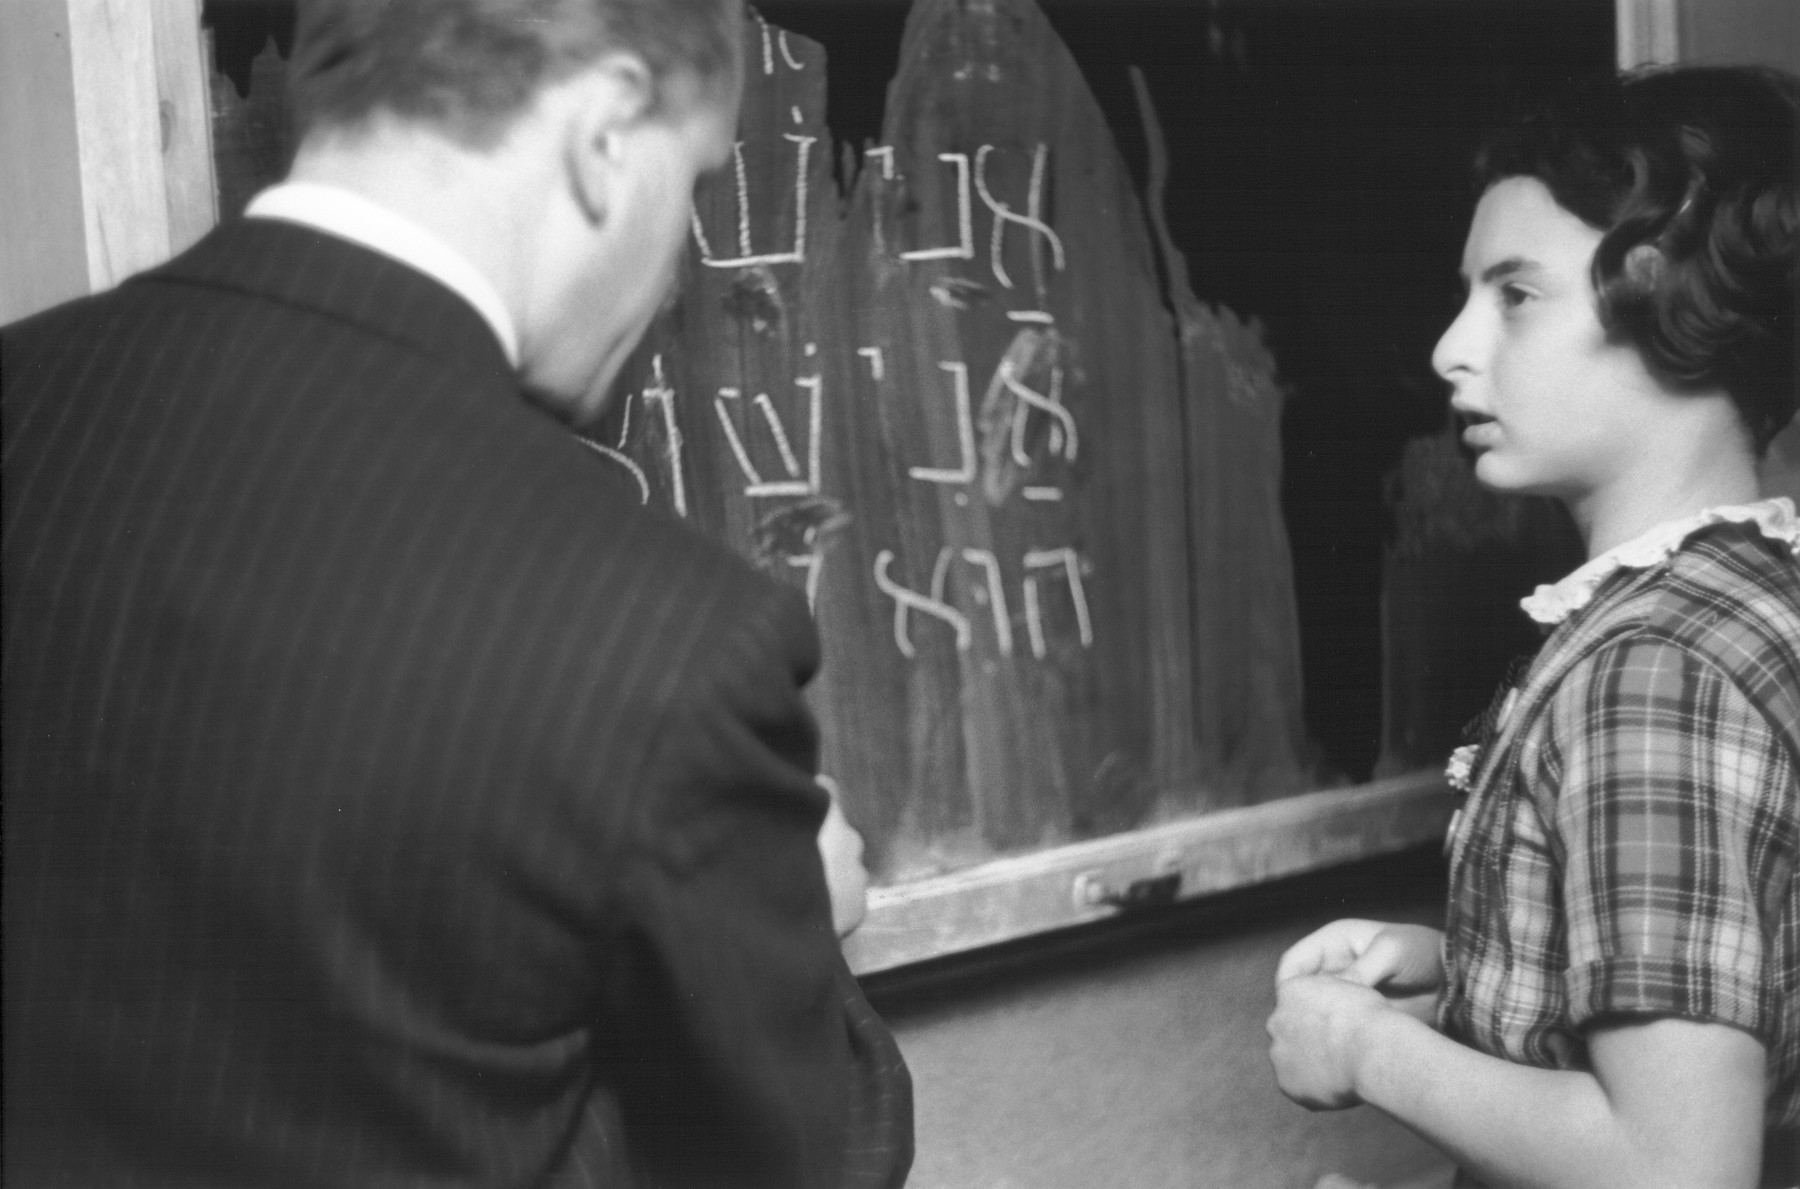 A Hebrew teacher at the Goldschmidt Jewish private school in Berlin-Grunewald instructs a pupil at the chalkboard.